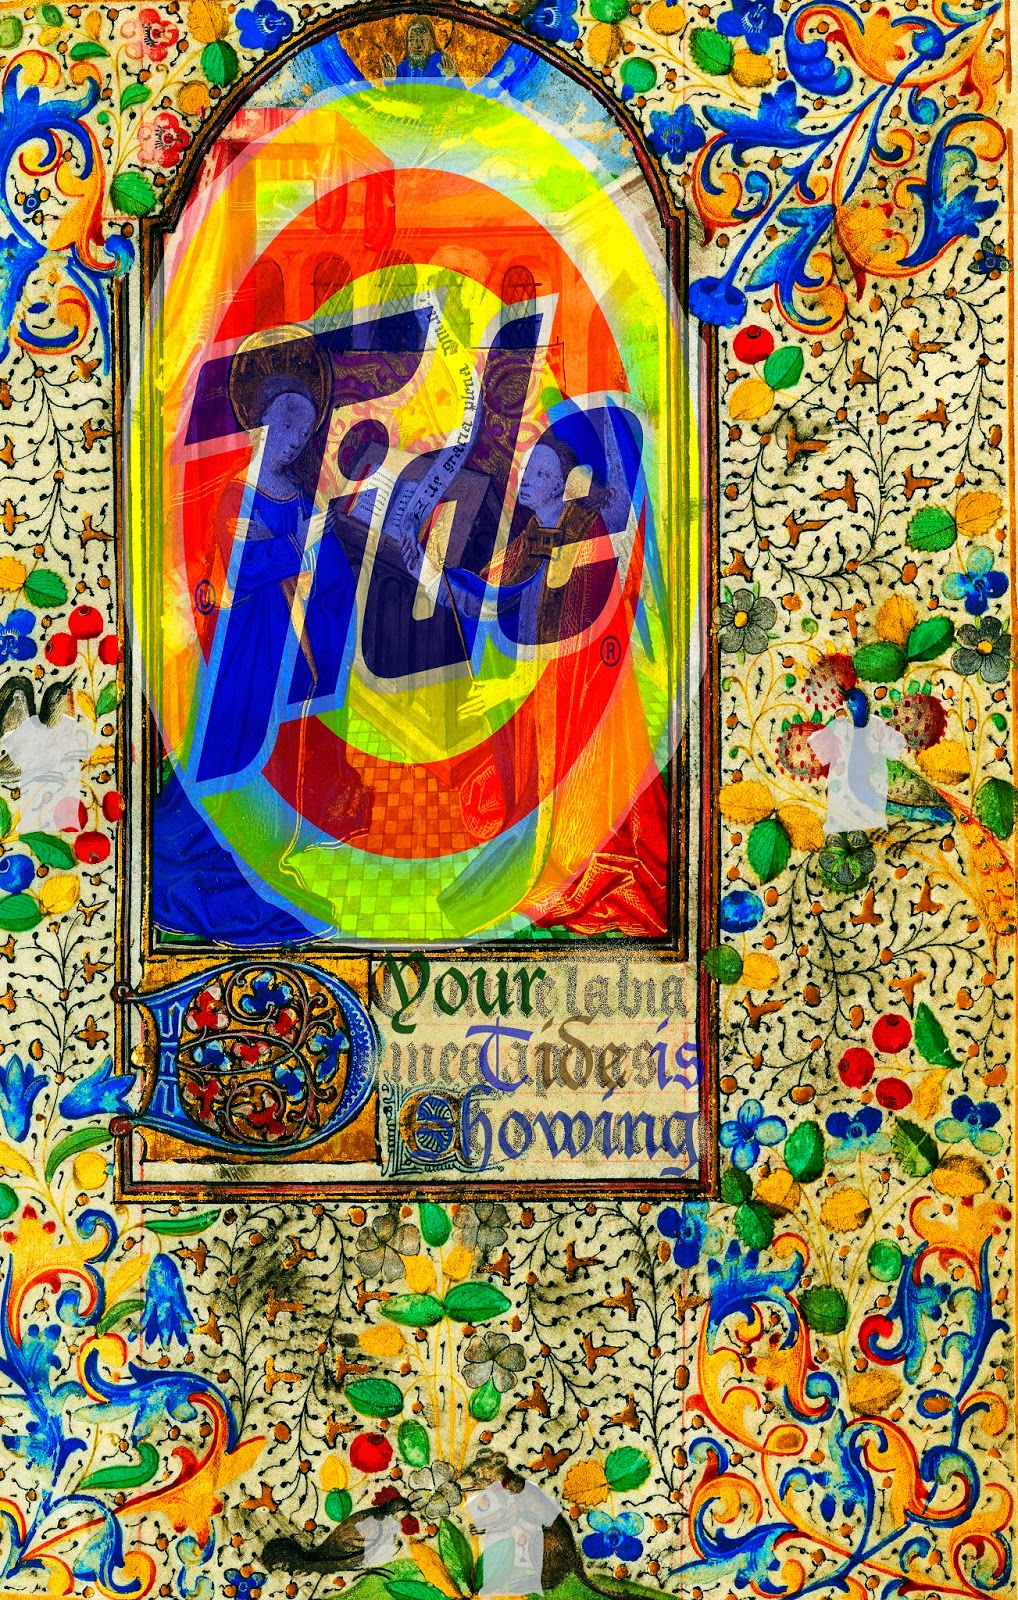 An image of a medieval manuscript page overlaid with the Tide logo.